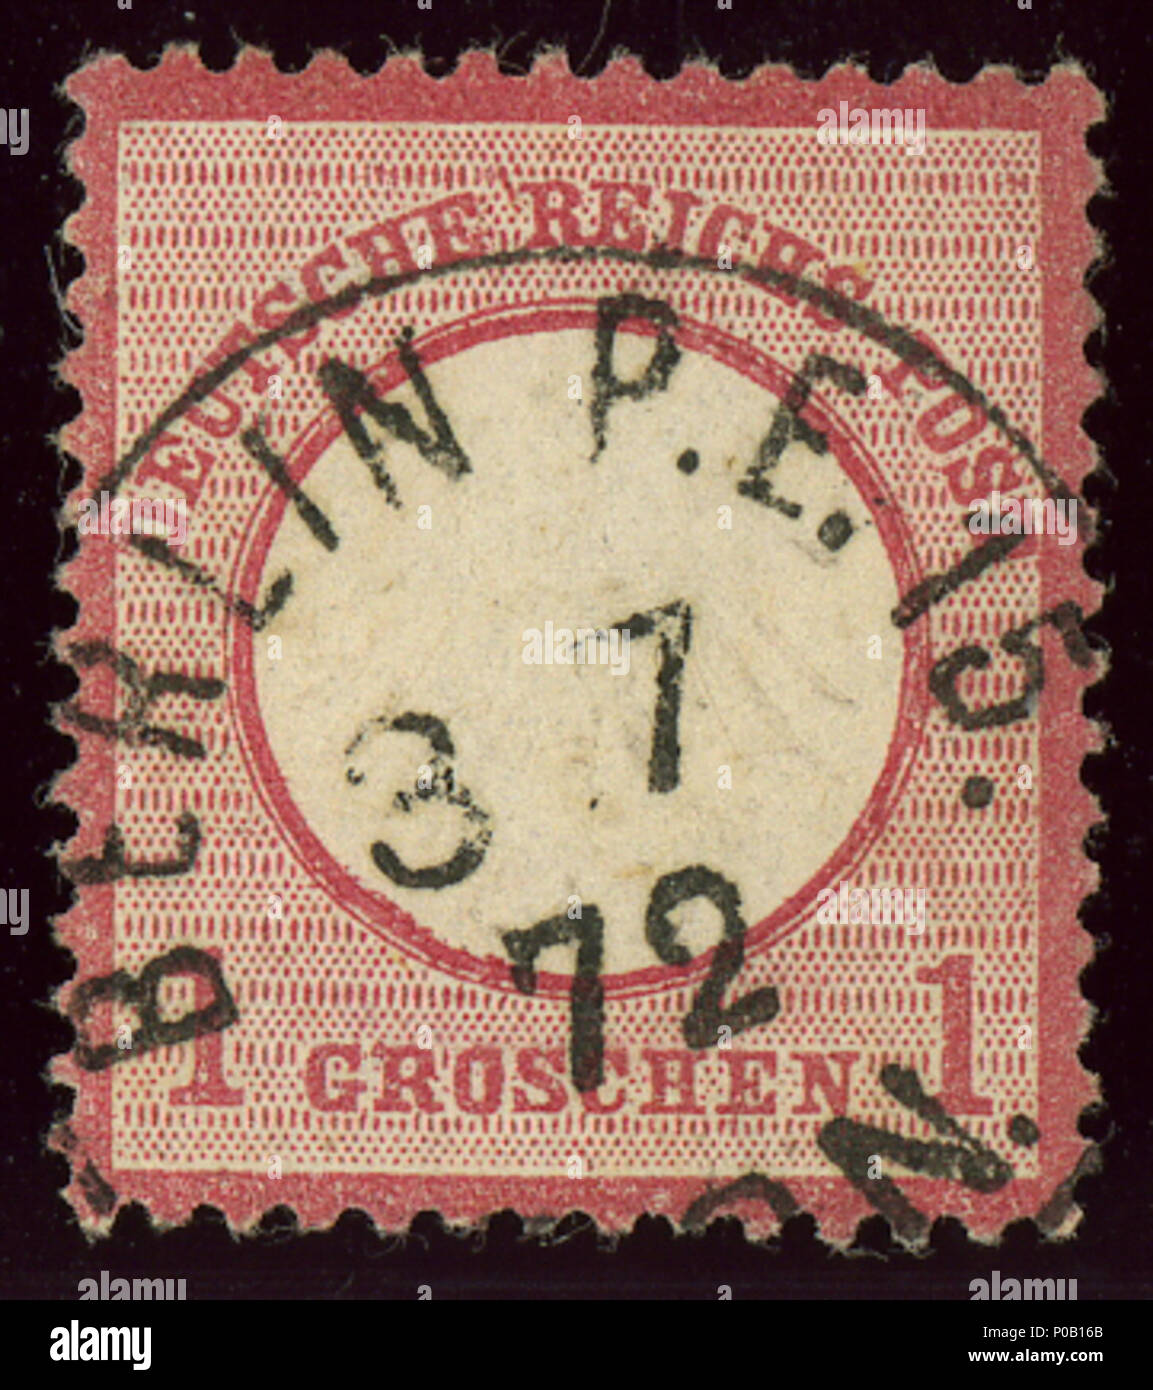 . English: Stamp of Germany, 1 Groschen first issue 1872, small eagle, cancelled at BERLIN Post-Expedition 15 in July 1872.  . 25 August 2013, 13:17:16. Jacquesverlaeken 1 1872 Reich 1Gr BerlinPE15 Mi4 - Stock Image